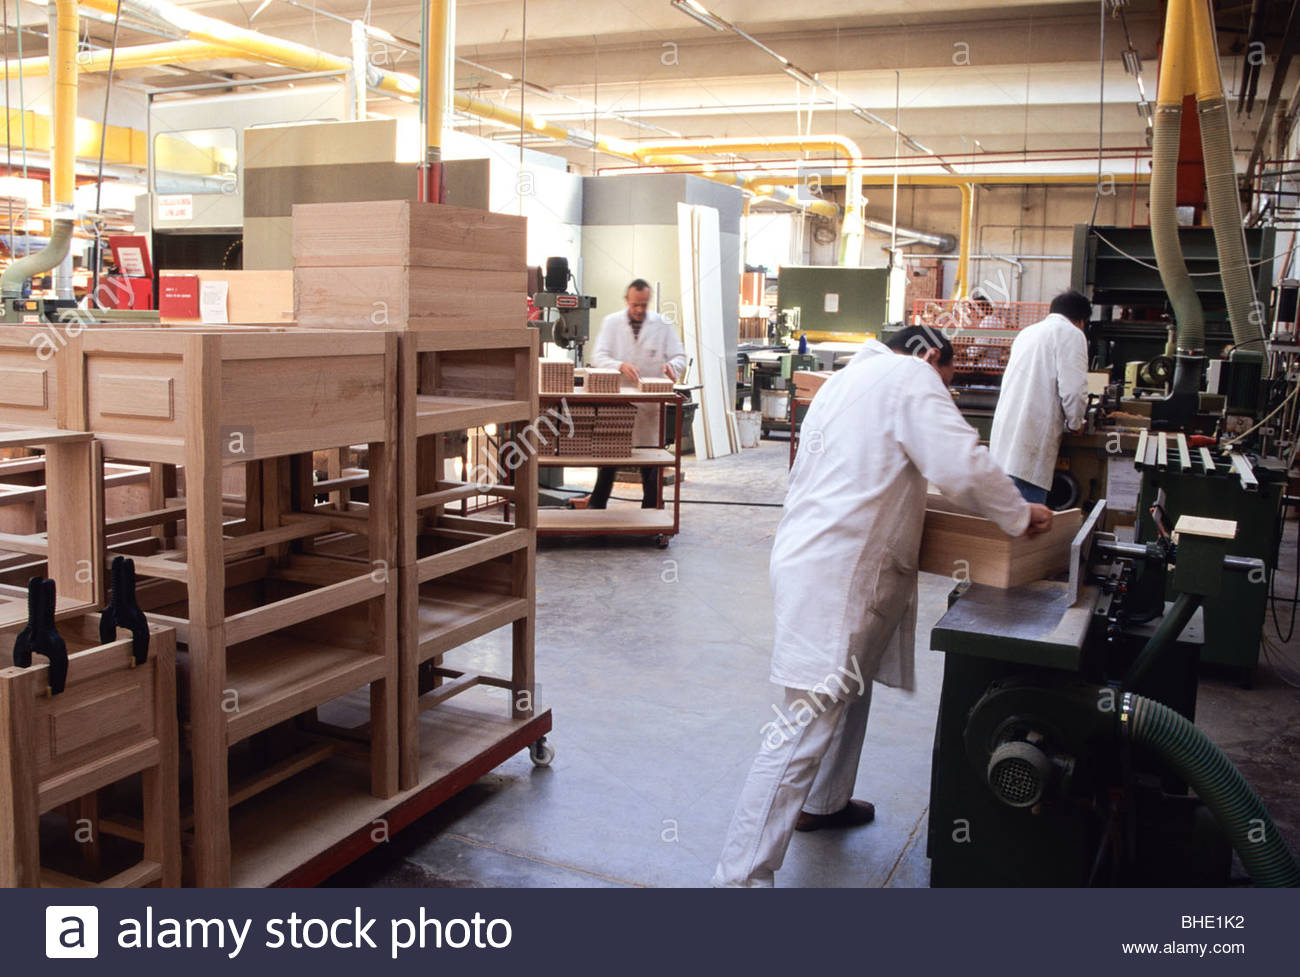 Furniture Factory Brianza Lombardia Italy Stock Photo Royalty Free Image 27968166 Alamy